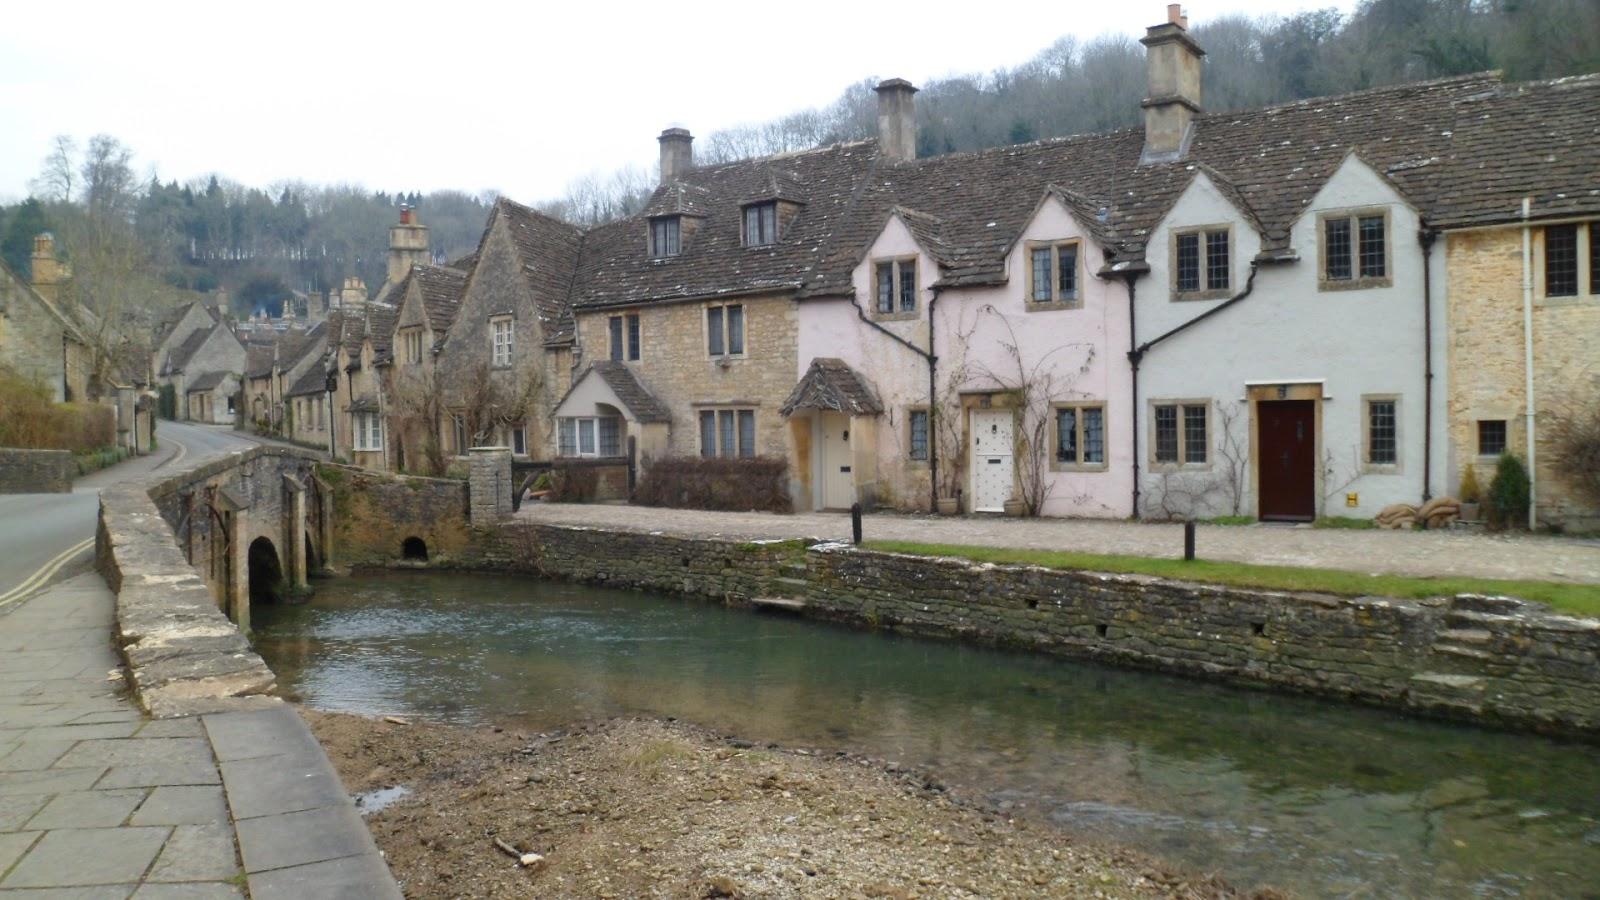 castle combe bridge - THE MOST BEAUTIFUL ENGLISH VILLAGES PICTURES STUNNING ENGLISH COUNTRY TOWNS IMAGES